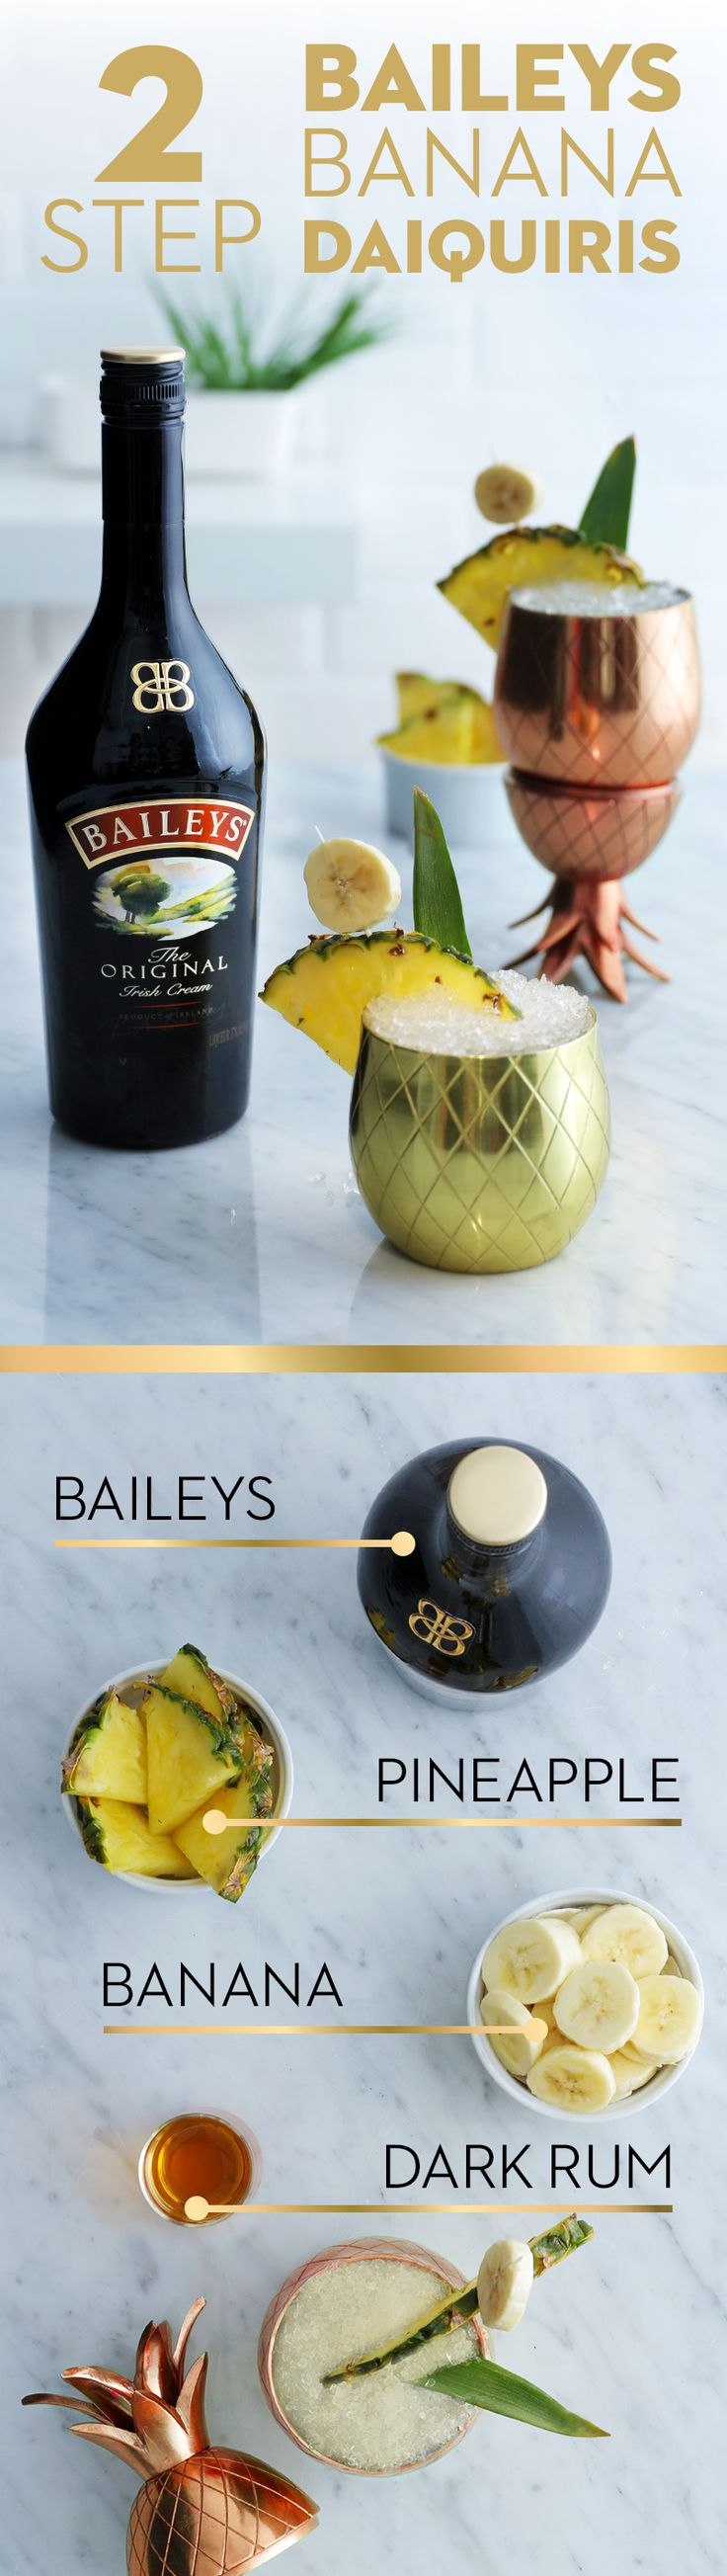 It's time to sit by the pool and beat the heat, and we've got just the recipe for the occasion! This Baileys Banana Daiquiri is a summer cocktail that's easy and delicious. So get your friends together because you're just 2 steps from savoring all the tropical frozen, smooth flavor. Recipe: Blend crushed ice, 4 oz. Baileys, 1 oz. Banana Liqueur, 4 oz. pina colada Mix, 2 oz. dark rum, and 1 oz. cream of coconut until smooth. Garnish with pineapple slice and additional bananas if desired.